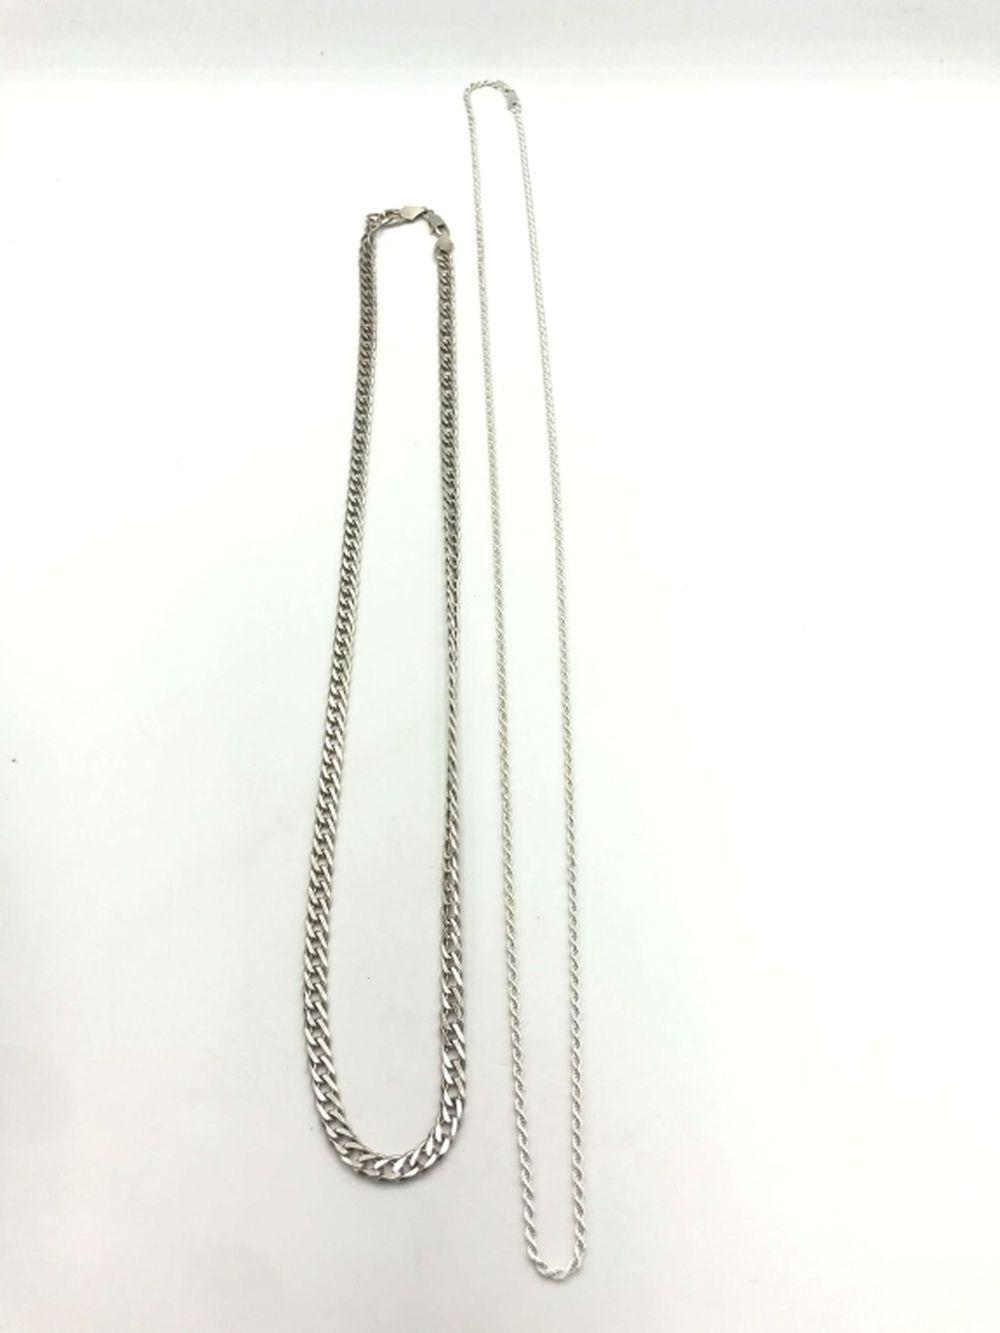 2 STERLING NECKLACES